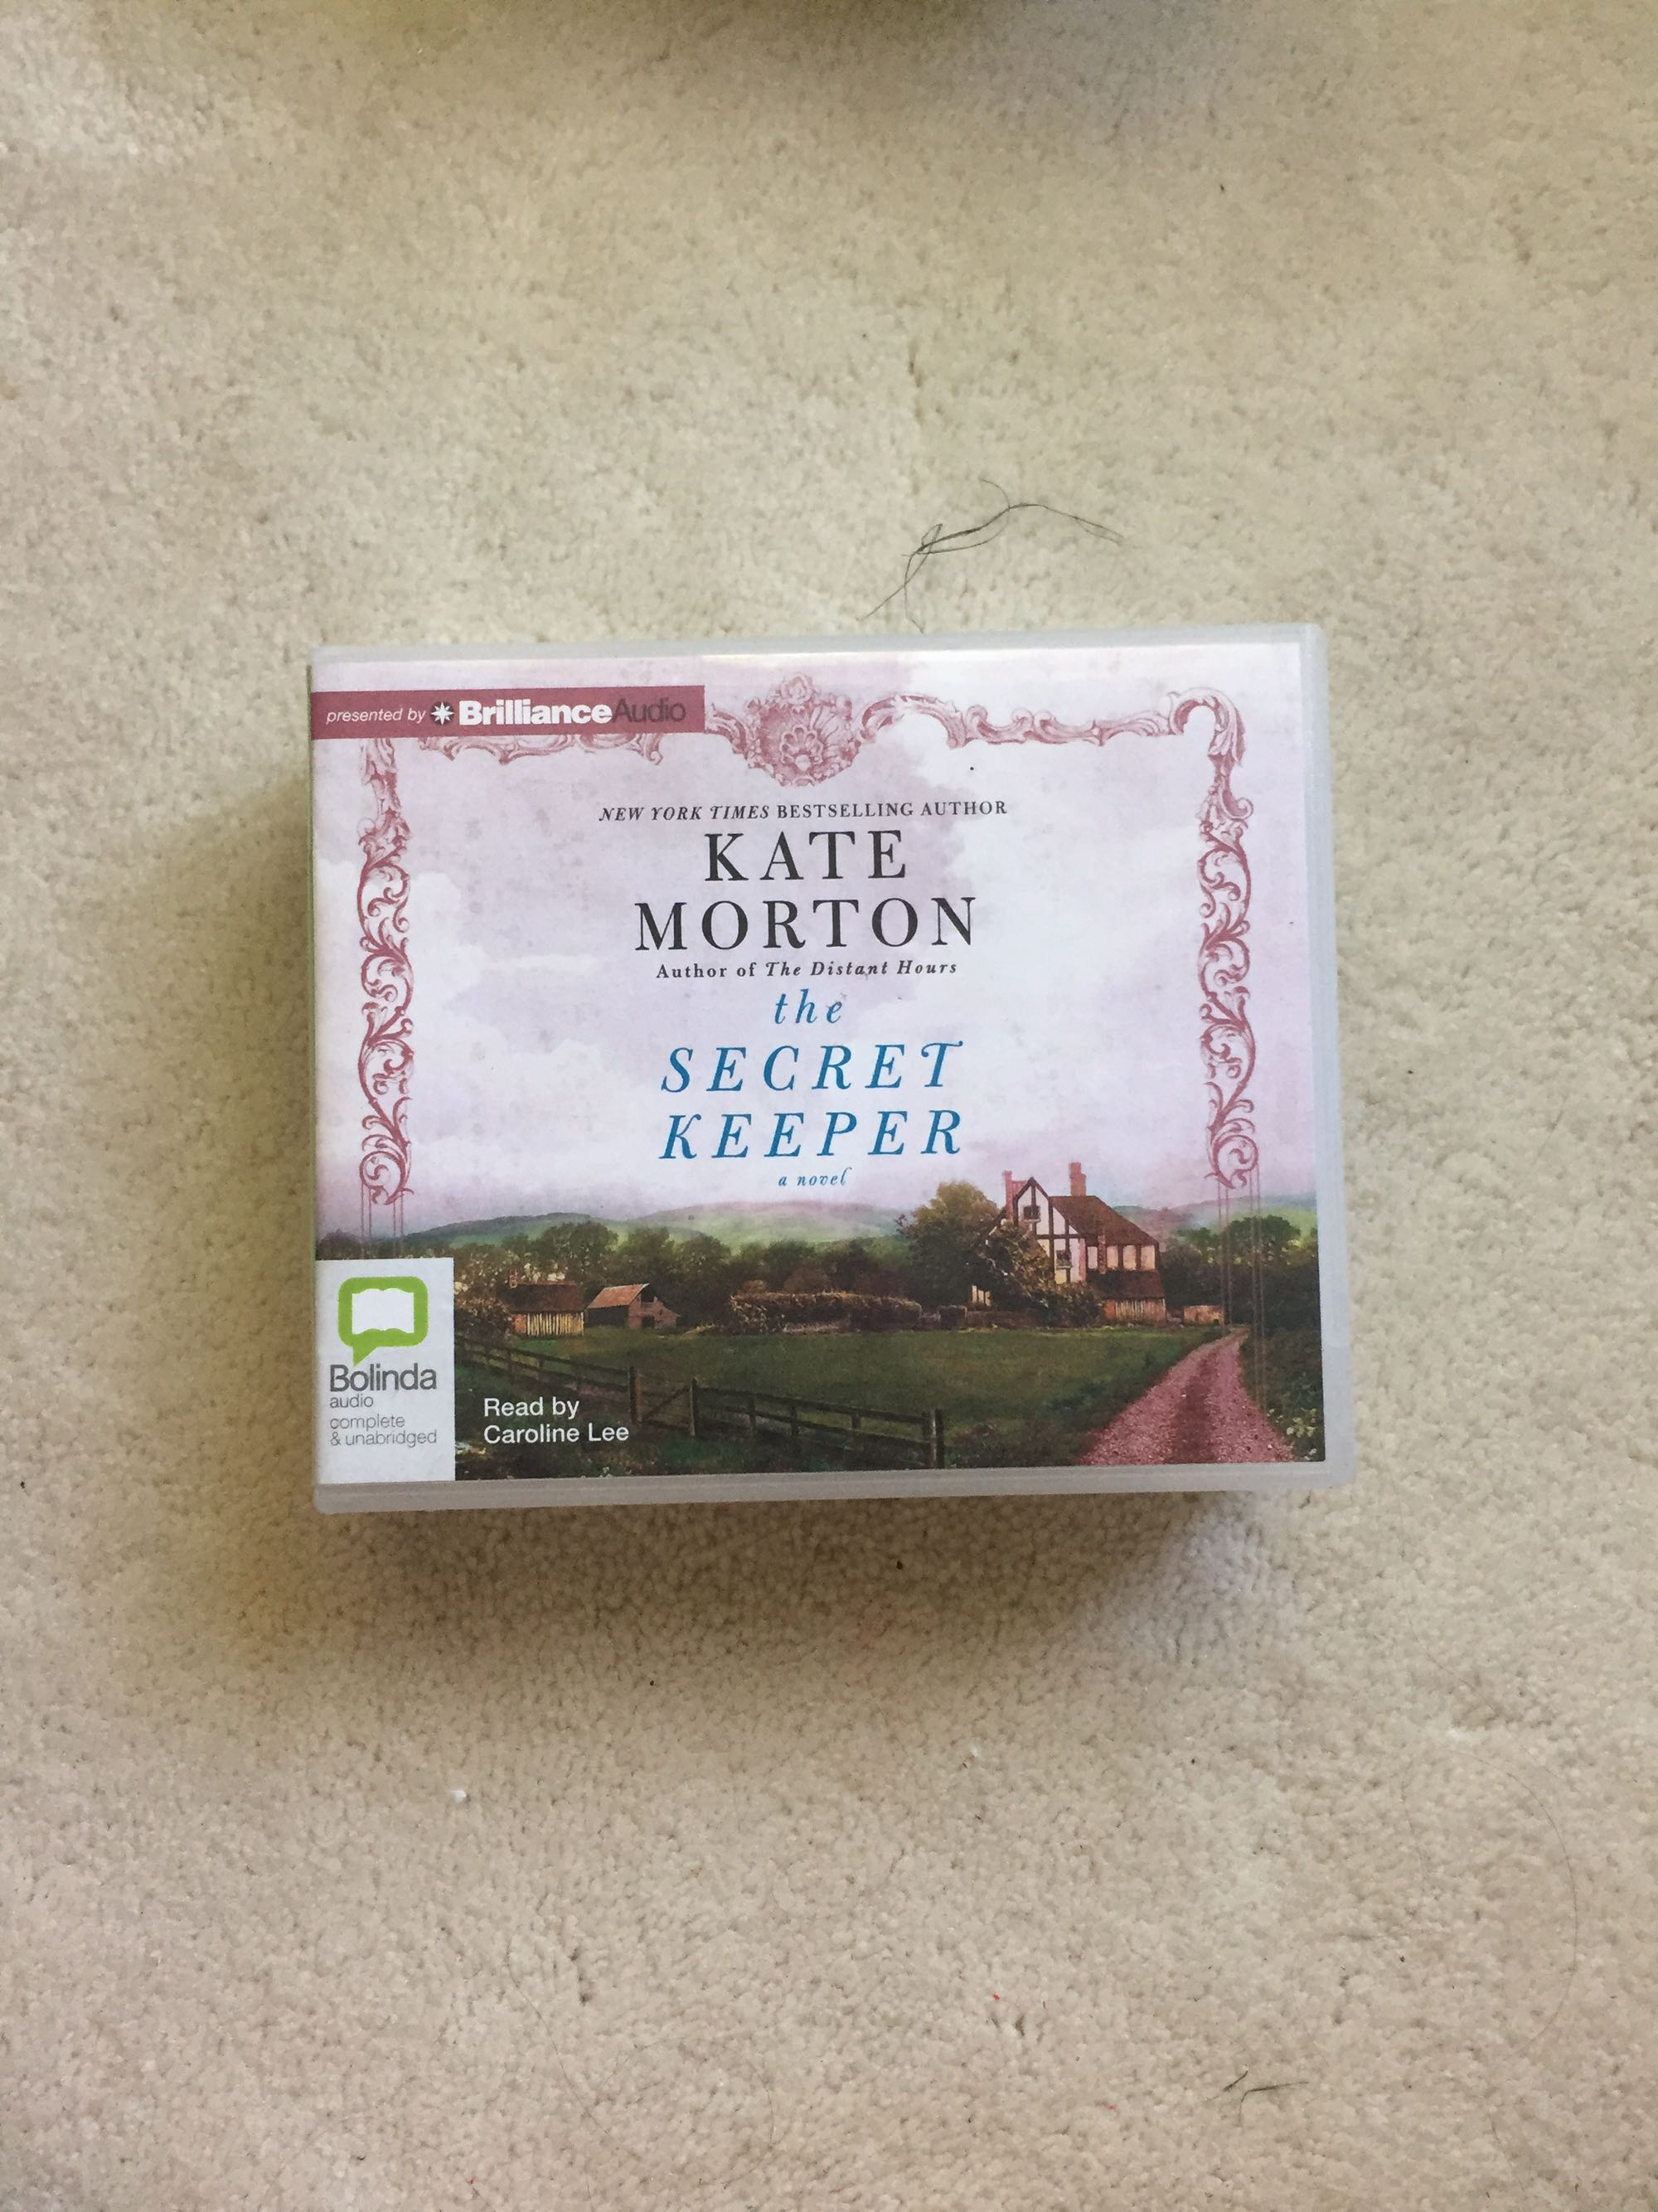 The Secret Keeper by Kate Morton audio book